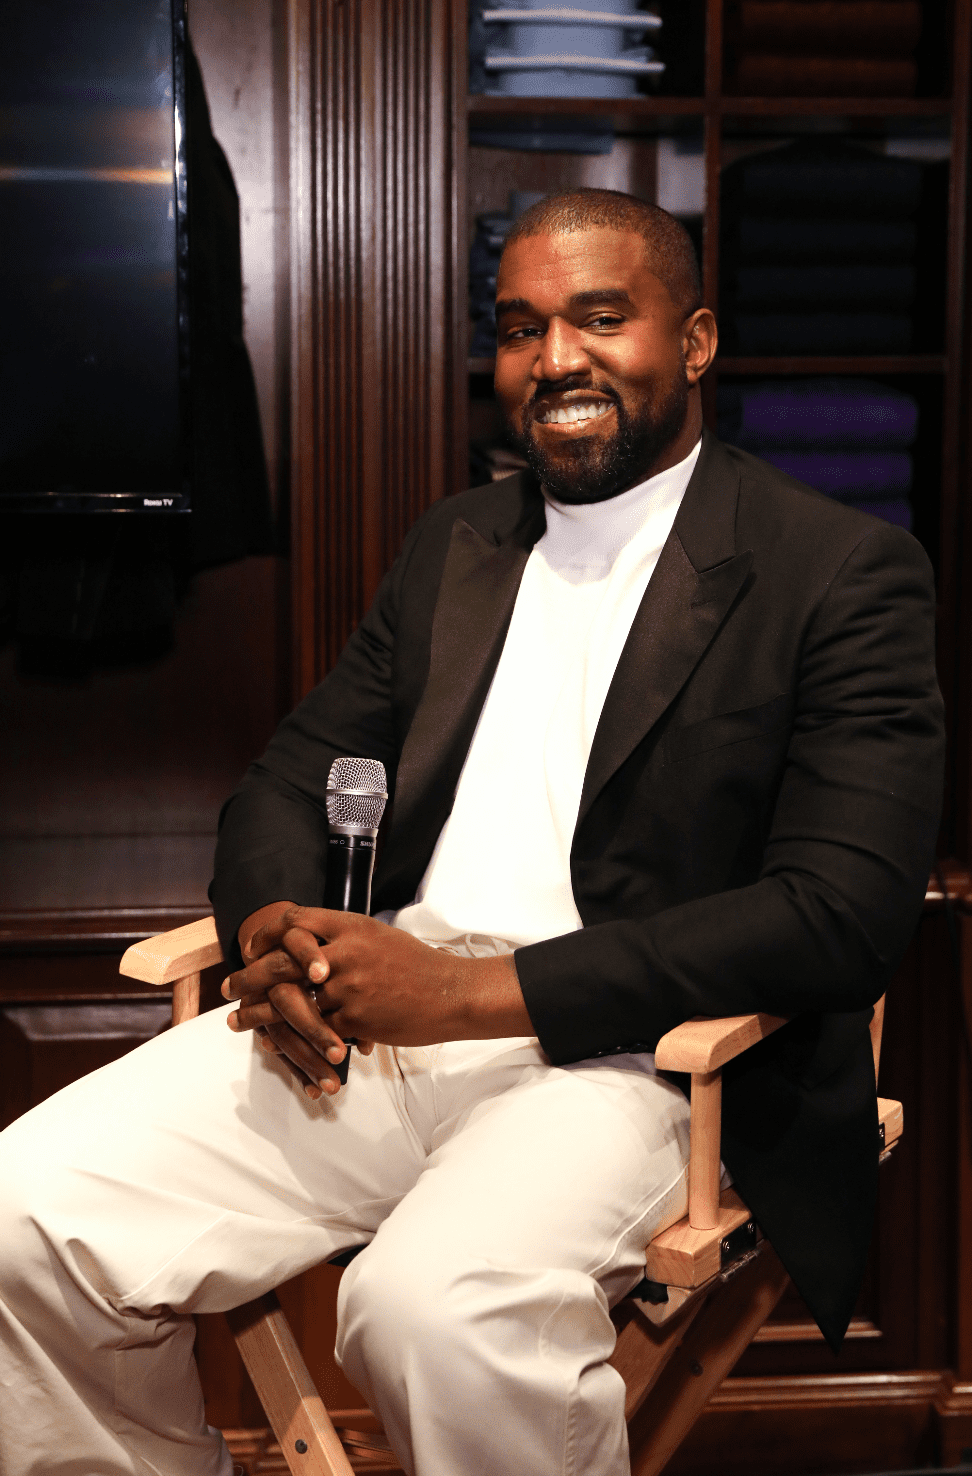 Kanye West attends Jim Moore Book Event At Ralph Lauren Chicago on October 28, 2019 in Chicago, Illinois. | Source: Getty Images